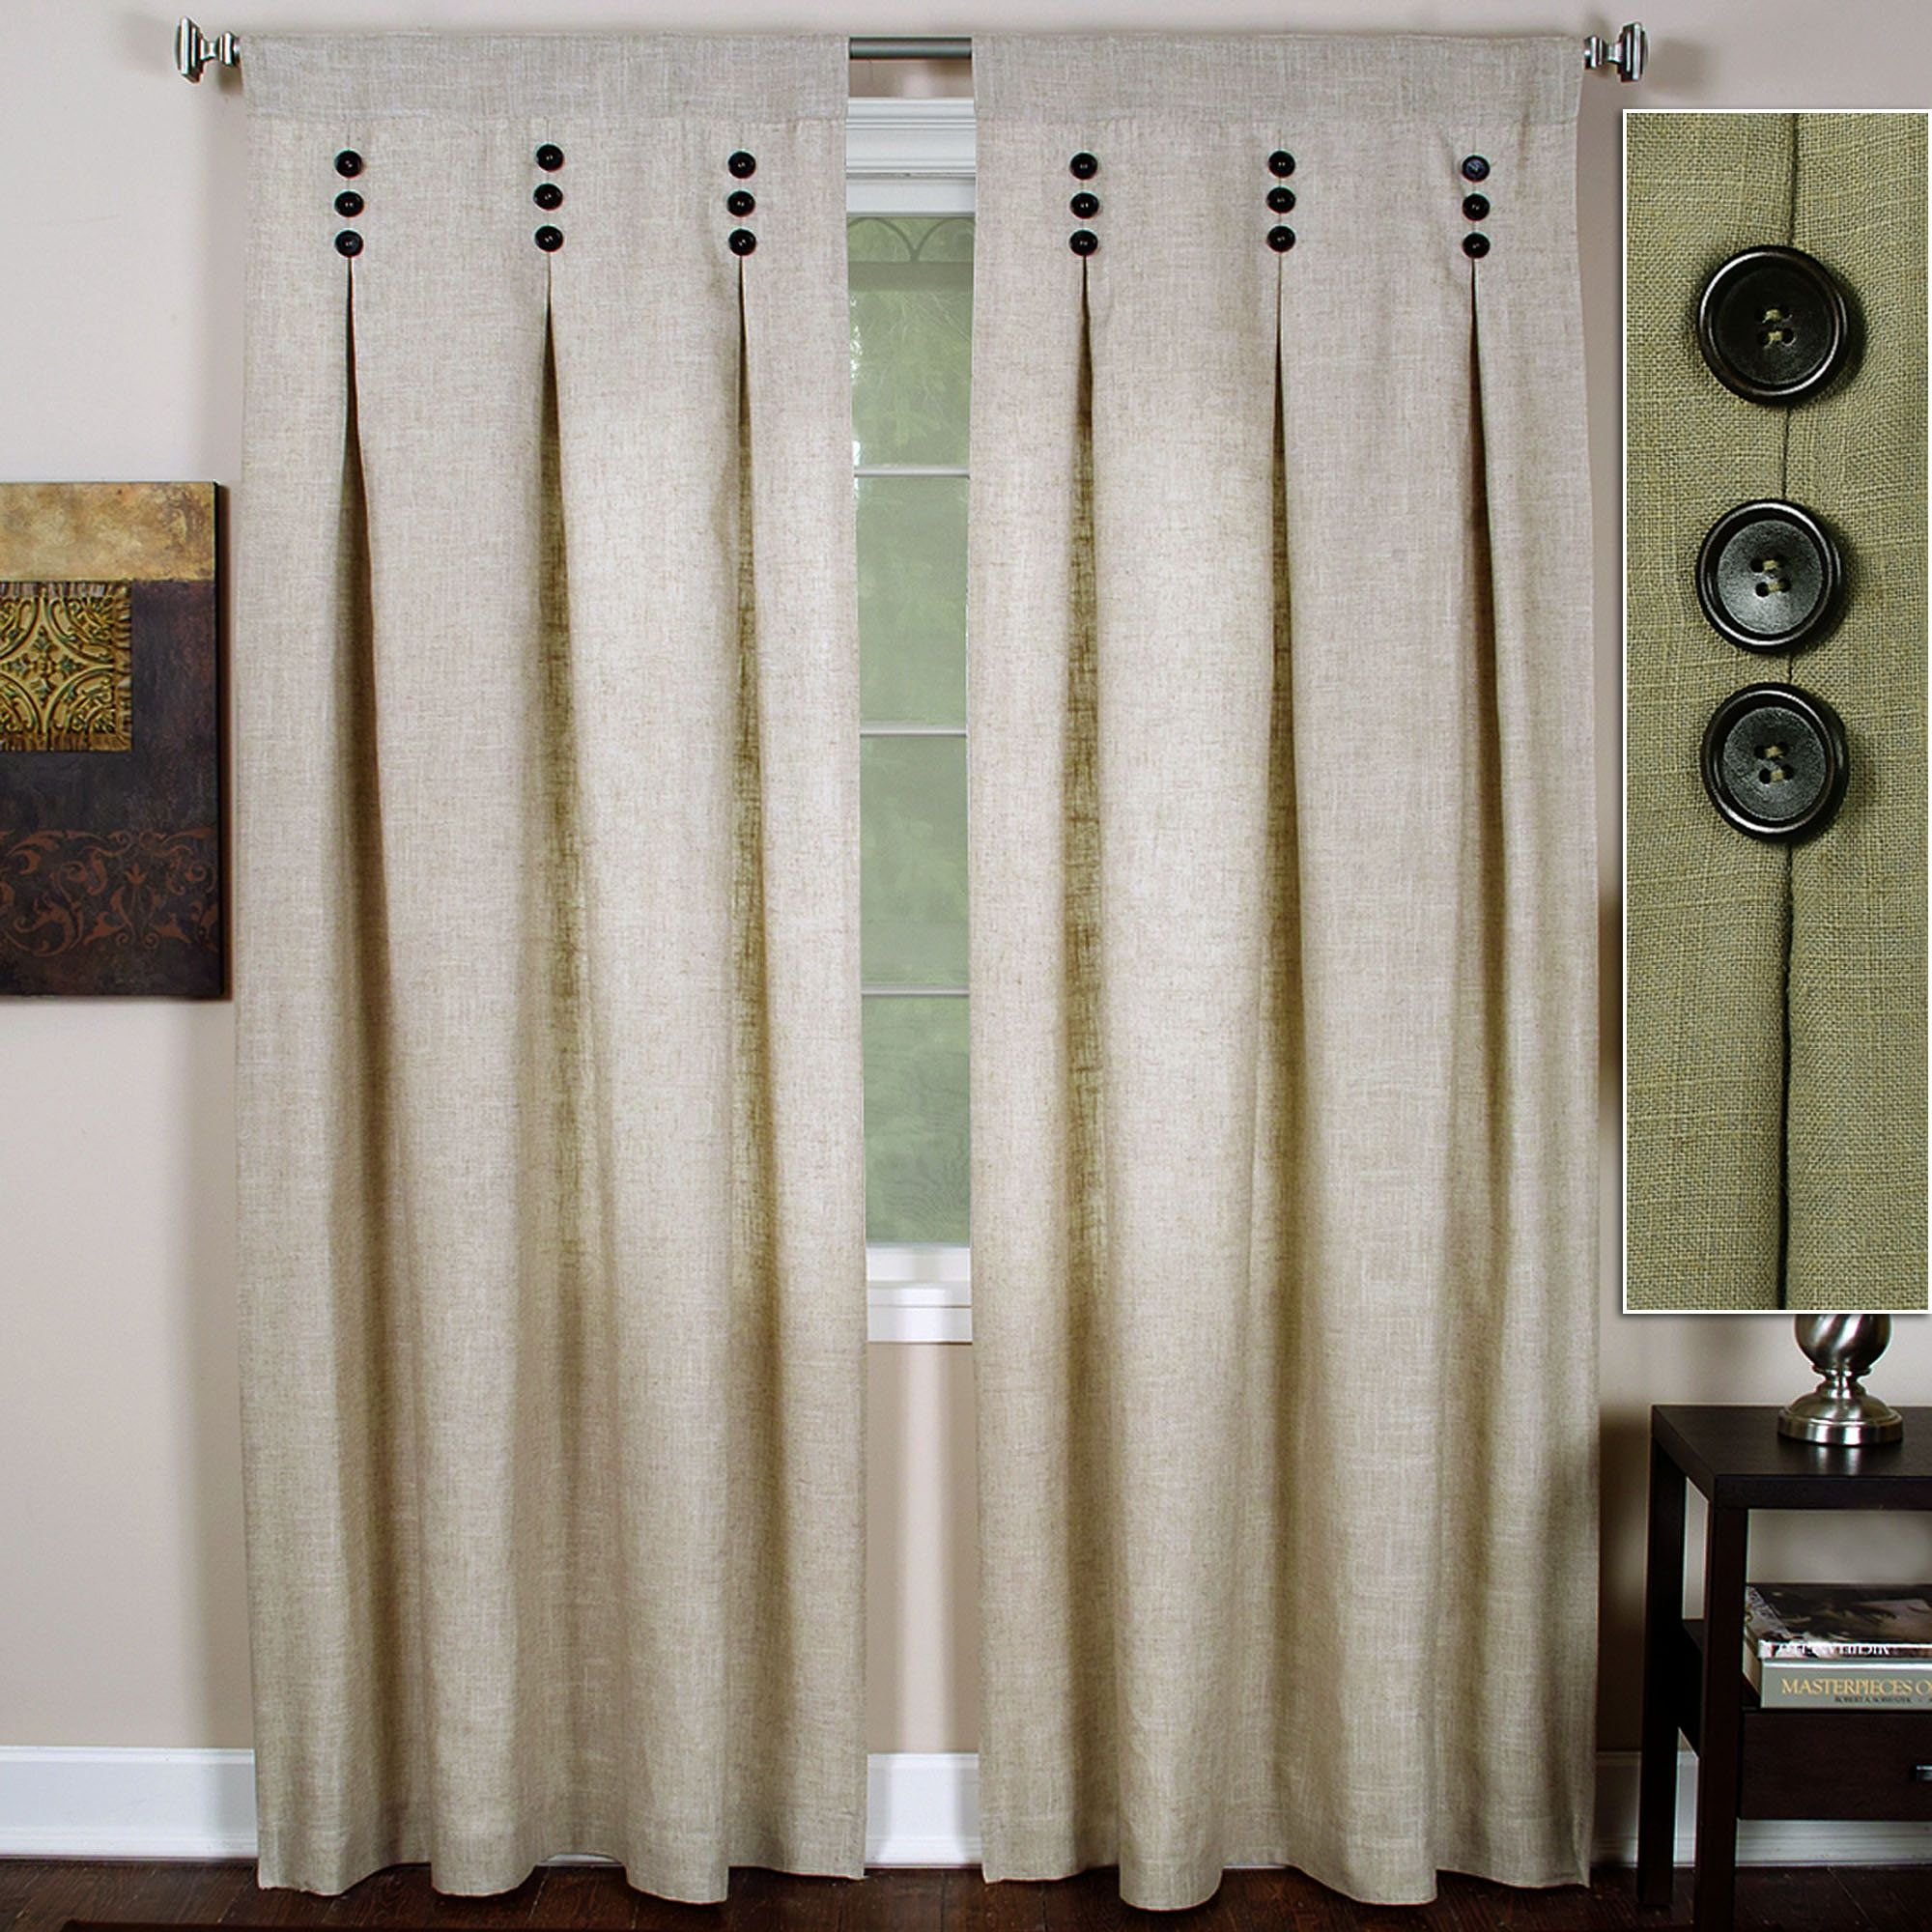 Modern kitchen curtain styles - Drapes Modern Curtains And Drapes Inverted Pleat Curtains Design